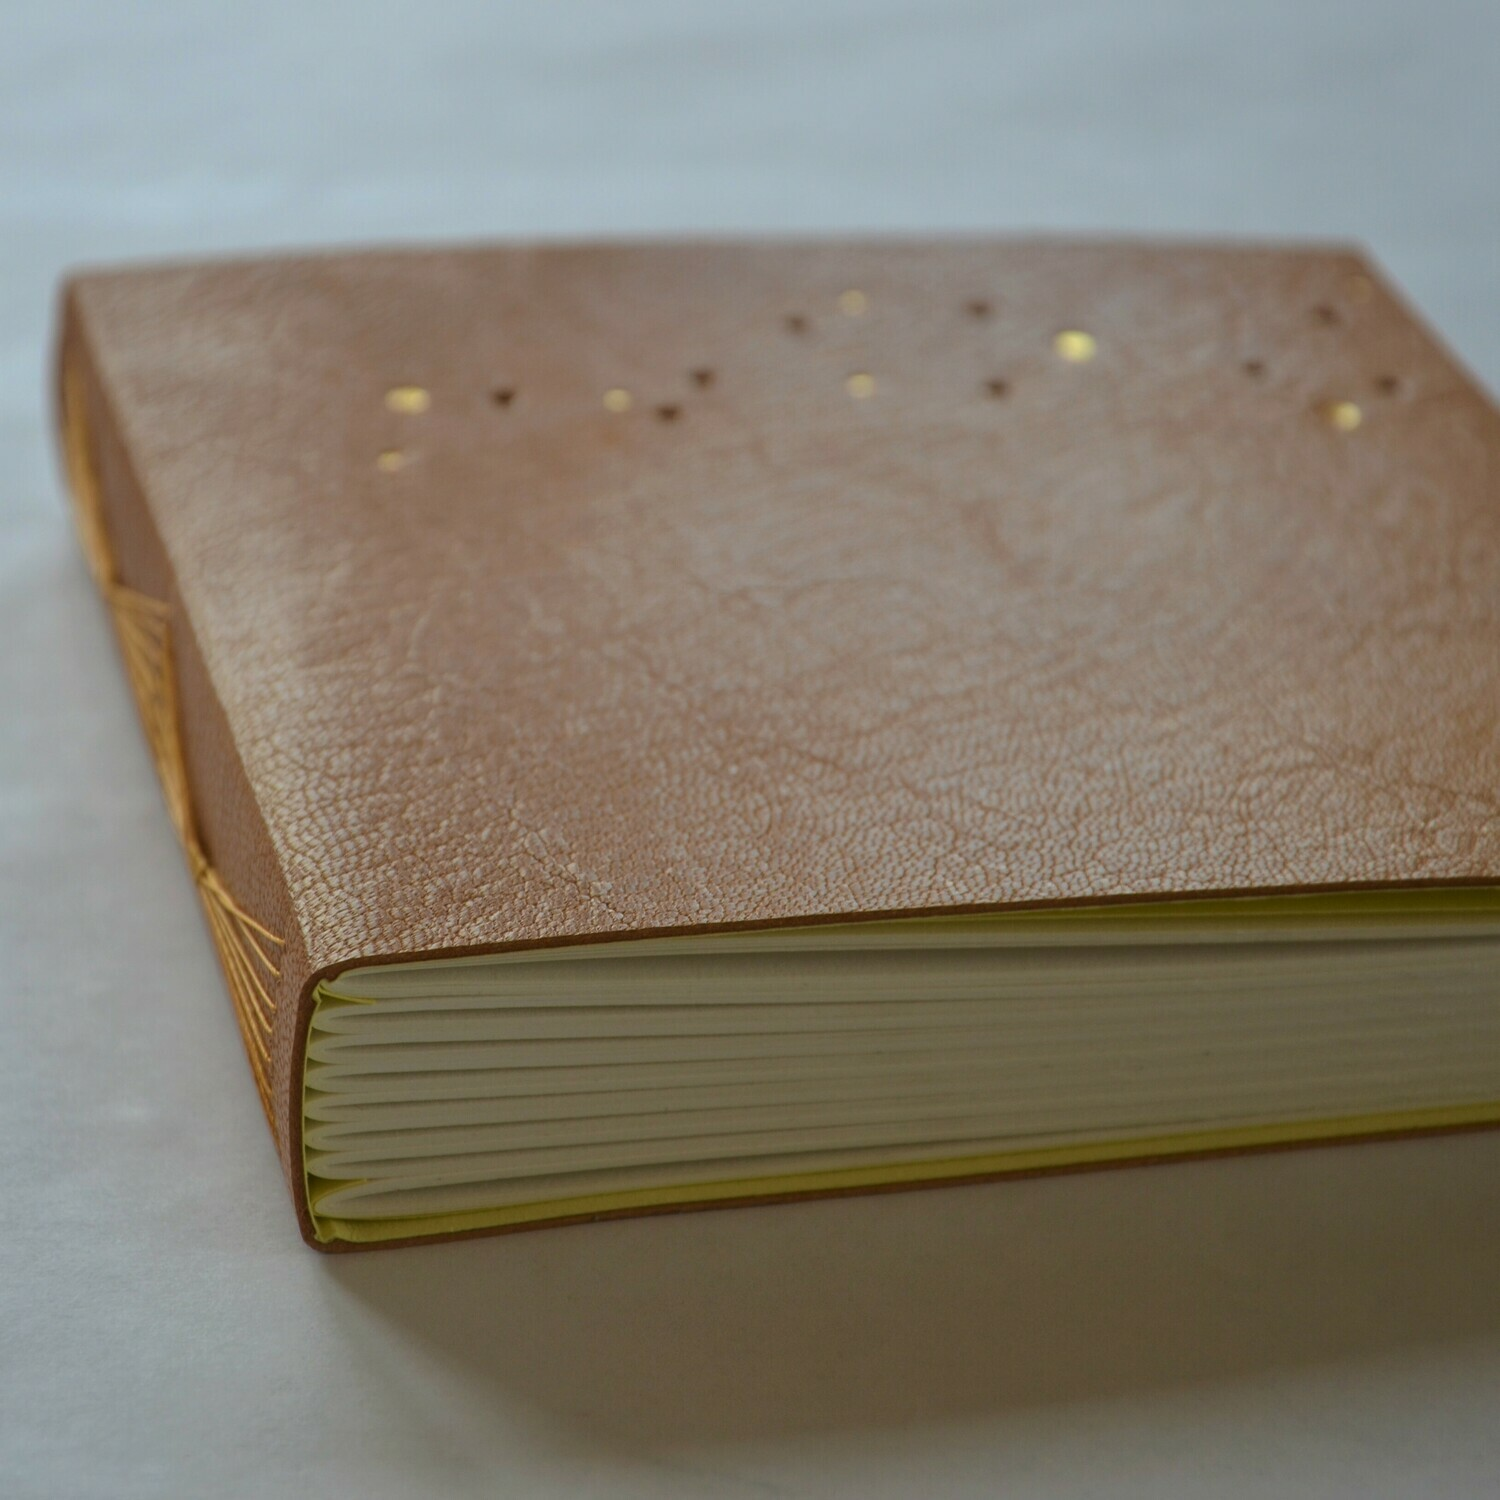 Leather Journal Tan and Yellow